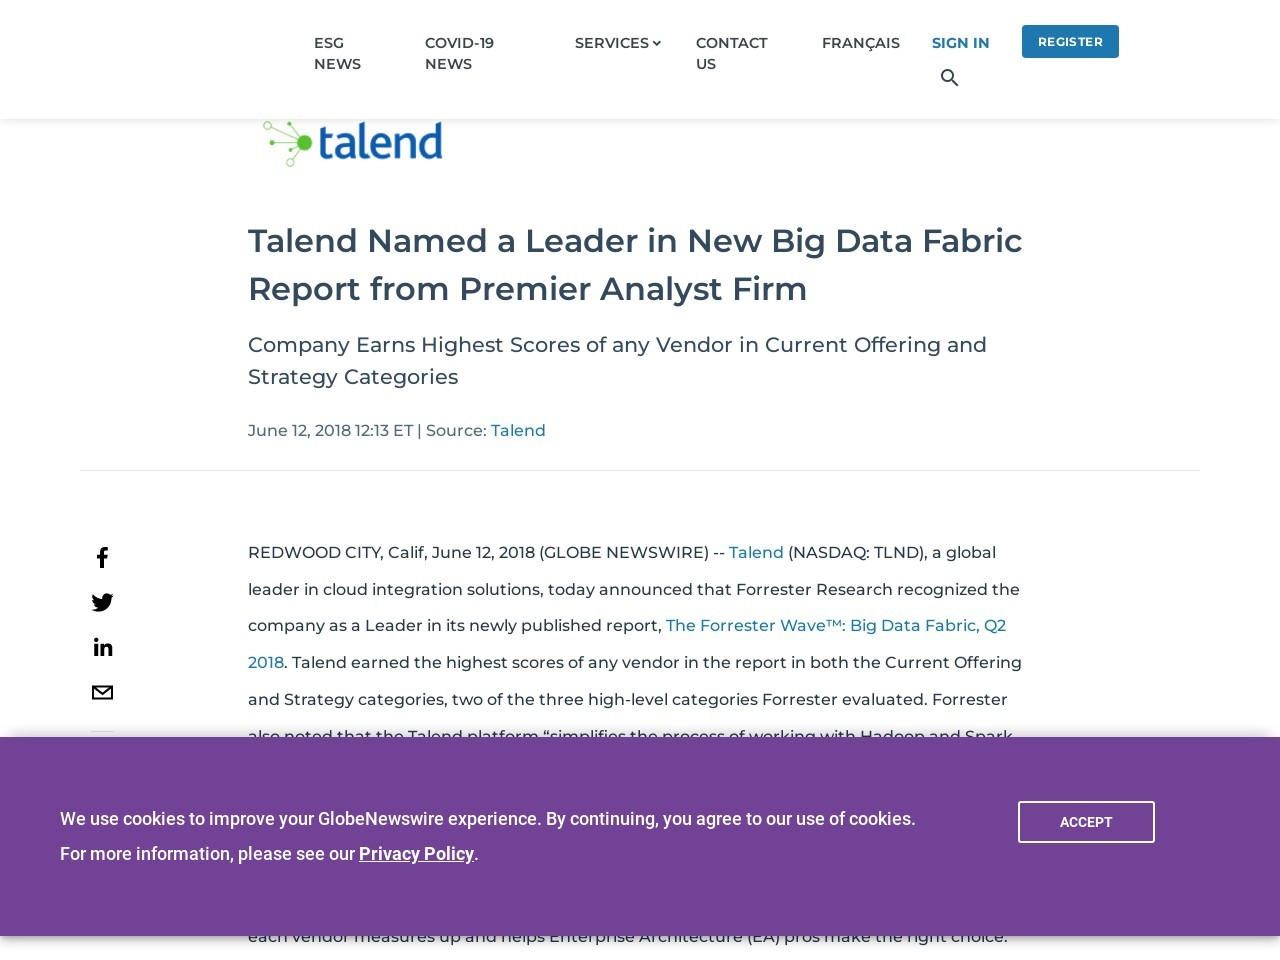 Talend Named a Leader in New Big Data Fabric Report from Premier Analyst Firm